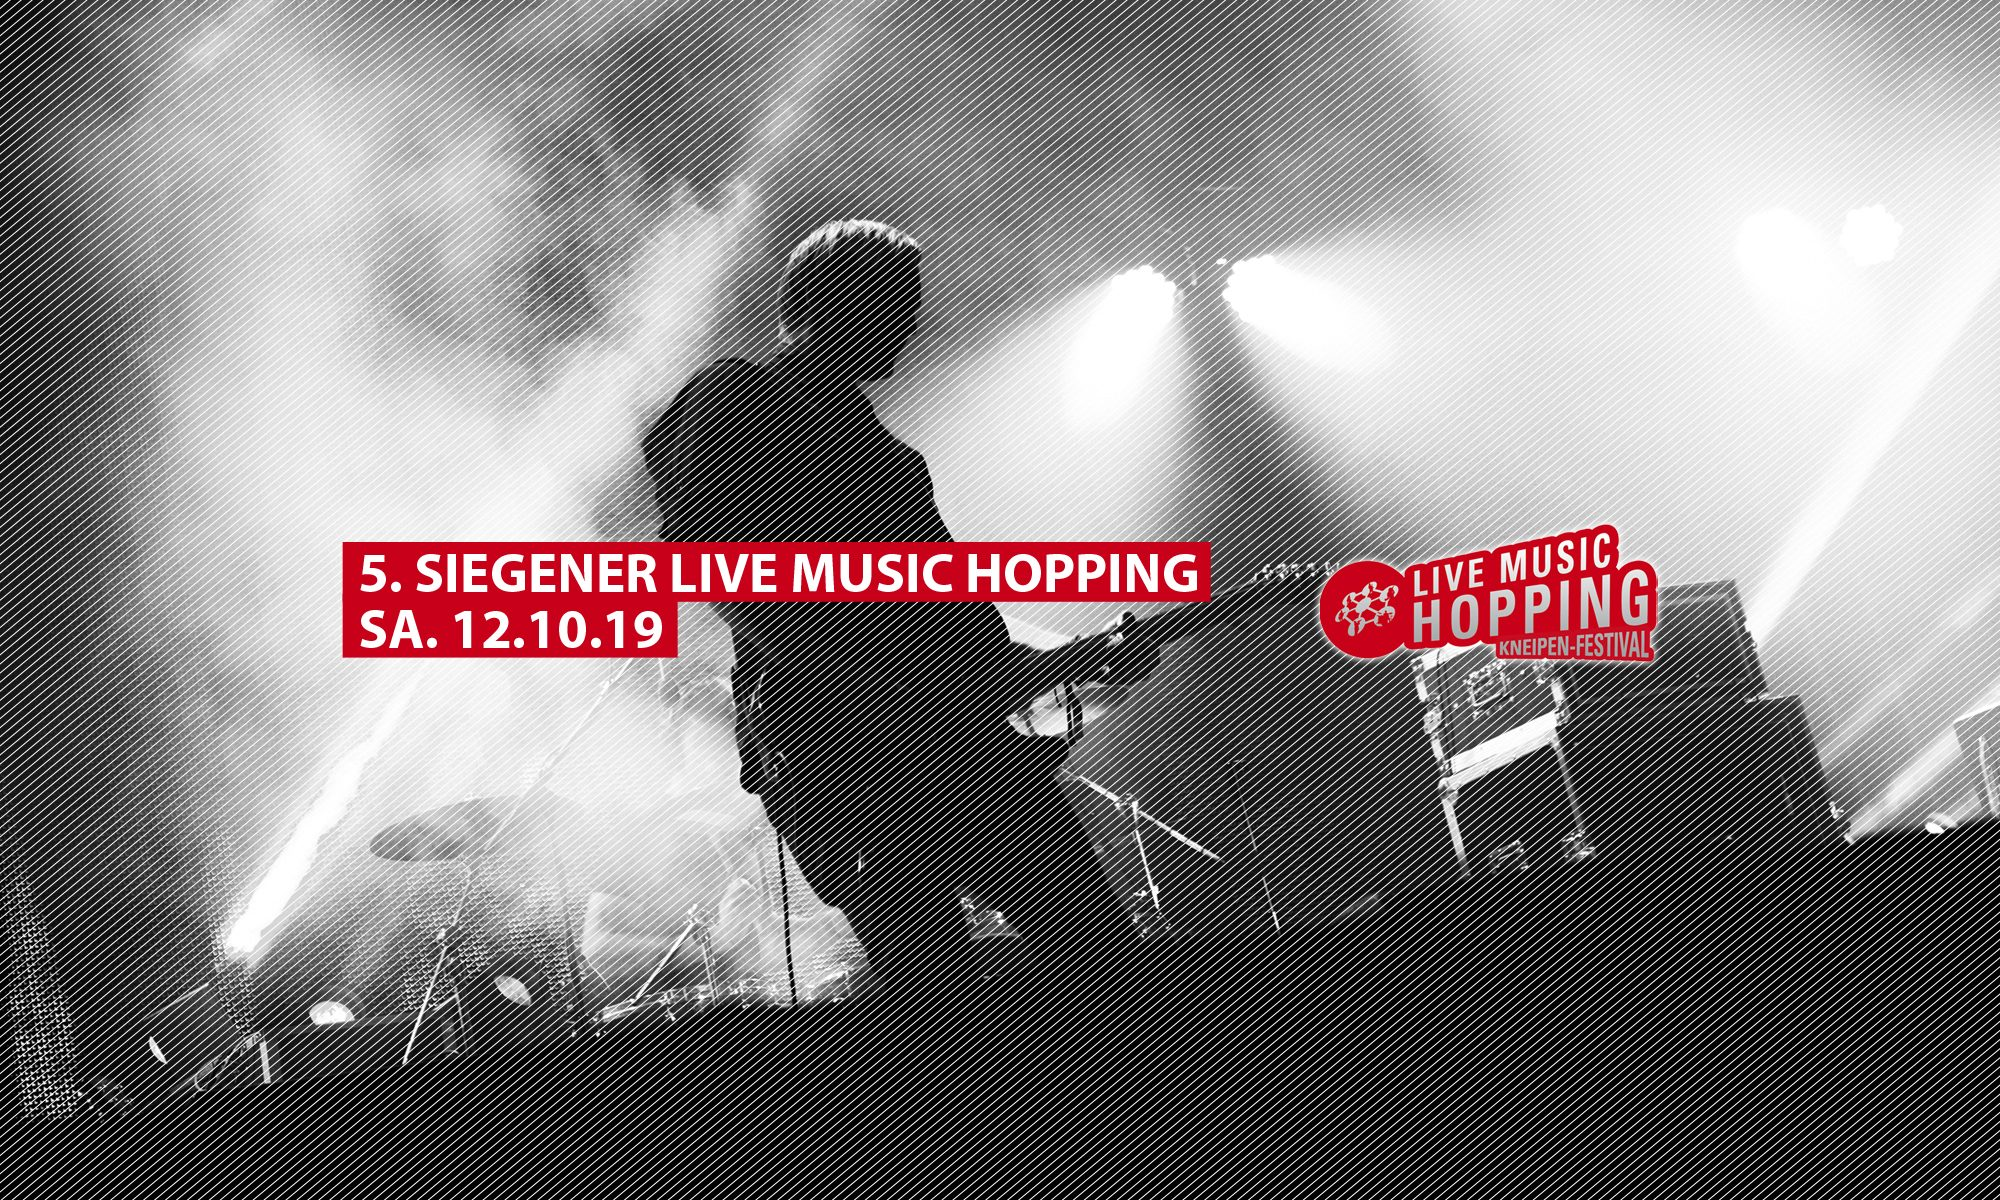 4. Siegener Live Music Hopping